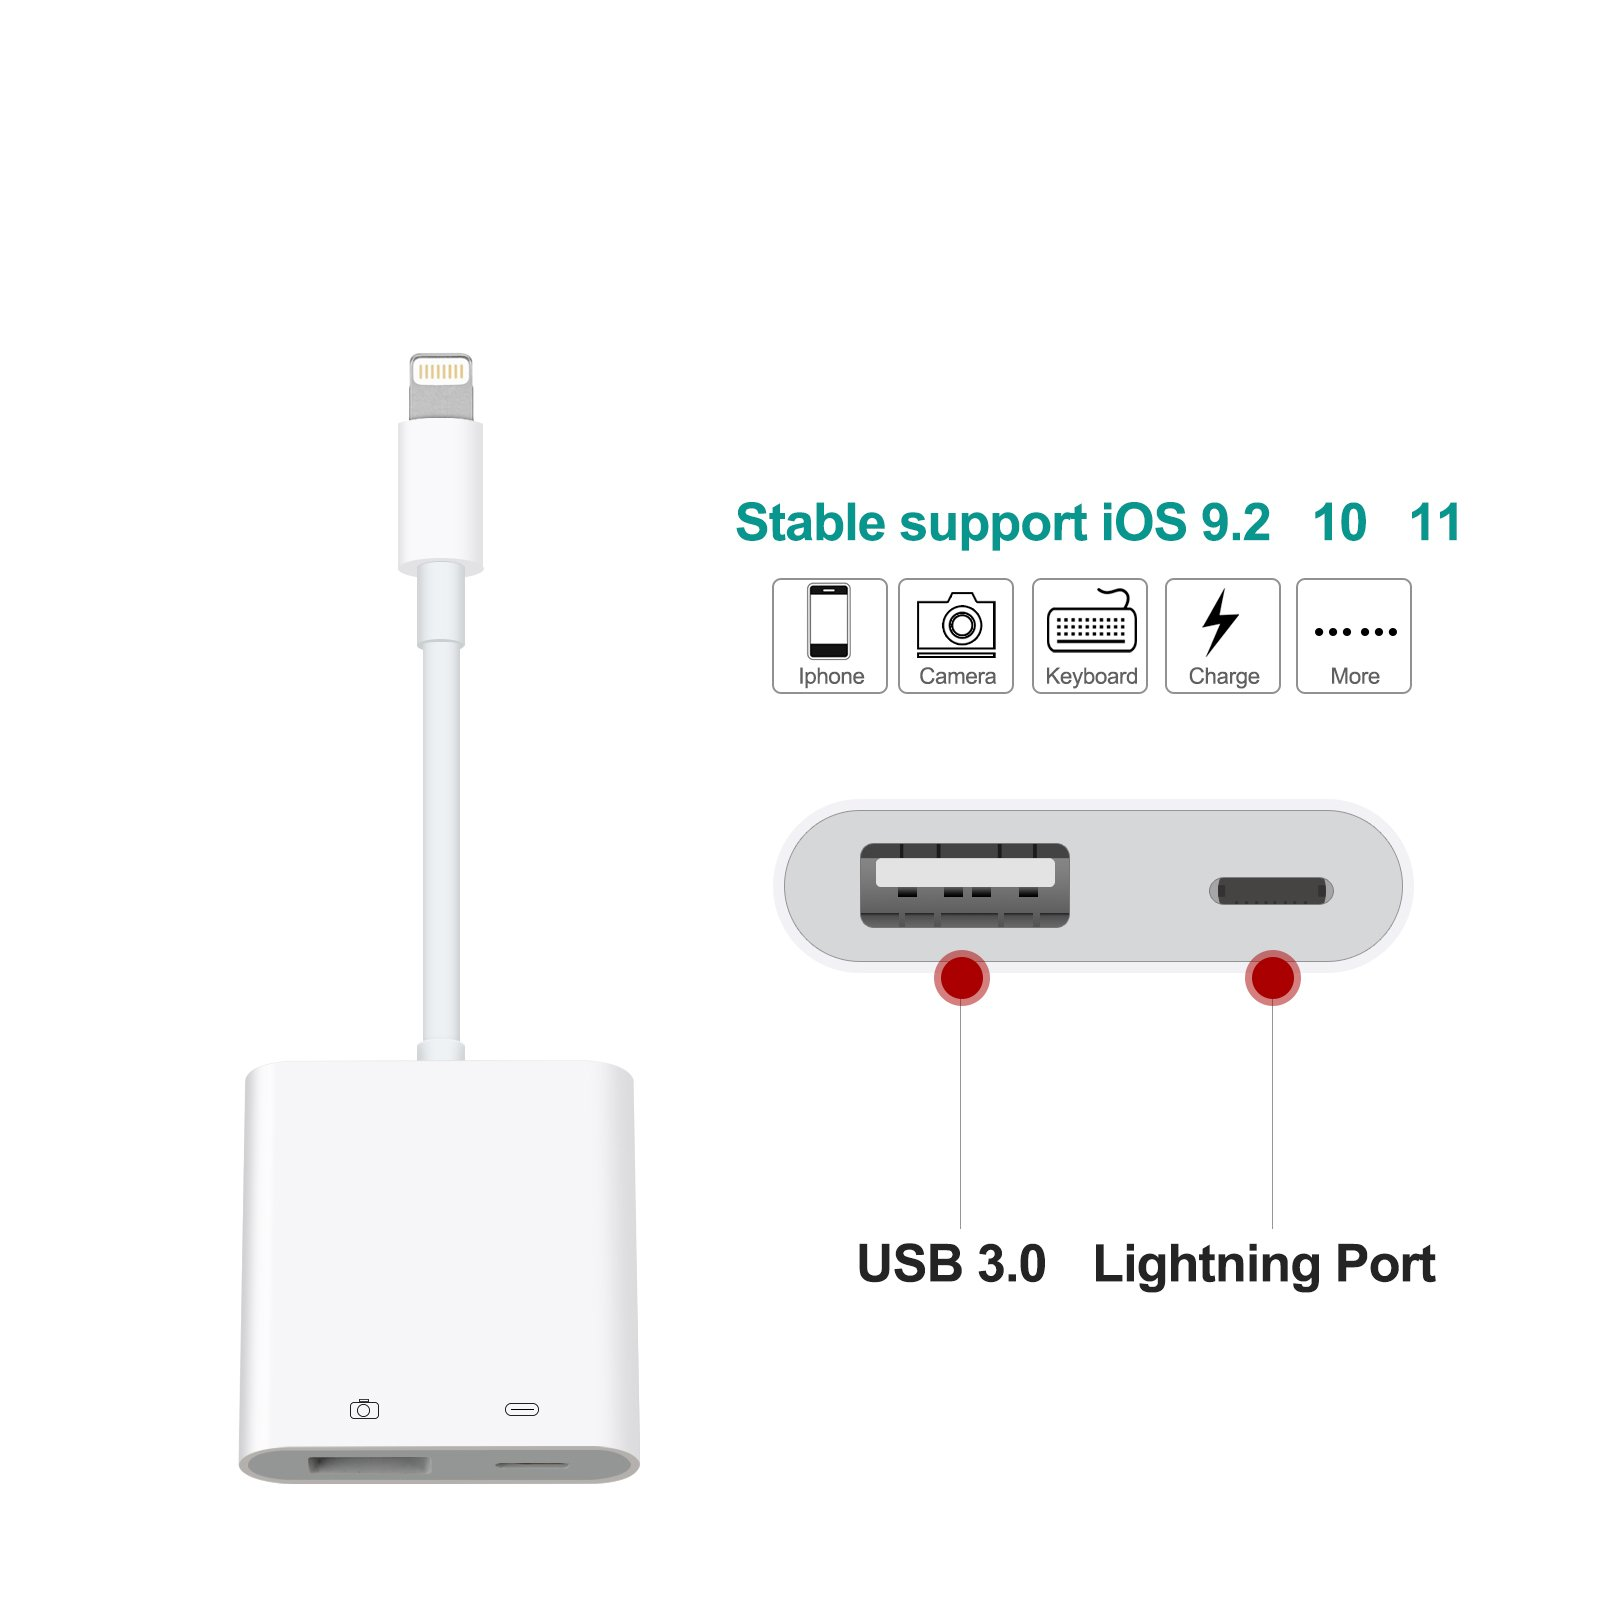 Queenwing SD Card Reader, Camera Reader Adapter, Lightning to USB Camera Adapter, Lightning to USB 3.0 Female OTG Adapter Cable With Charging Interface for iPhone/iPad, No App Required.